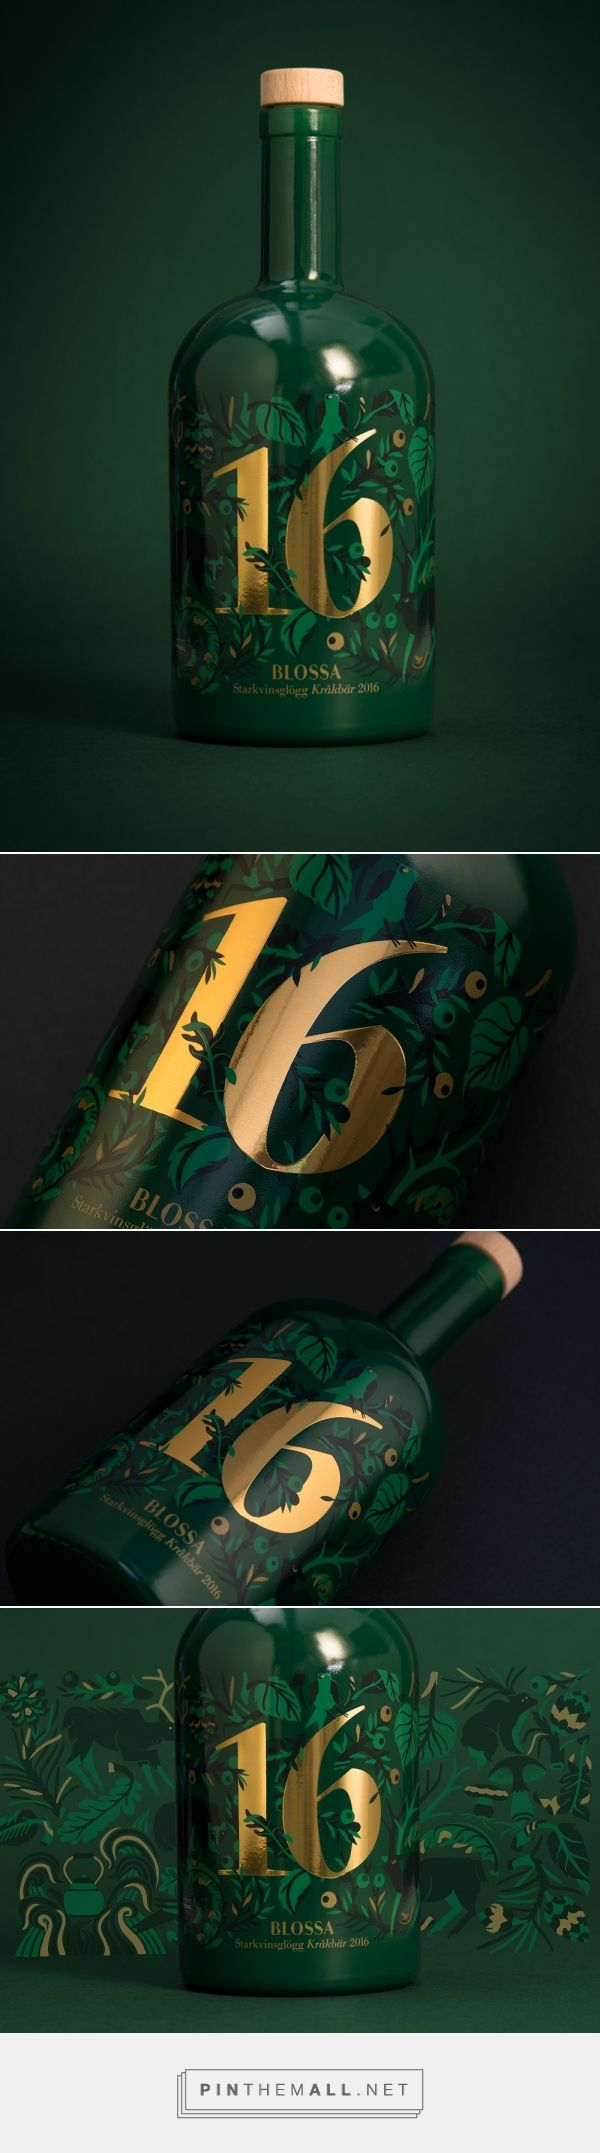 Blossa Annual 2016 mulled wine packaging design by Scandinavian Design Group (Sweden) - http://www.packagingoftheworld.com/2016/09/blossa-annual-2016.html